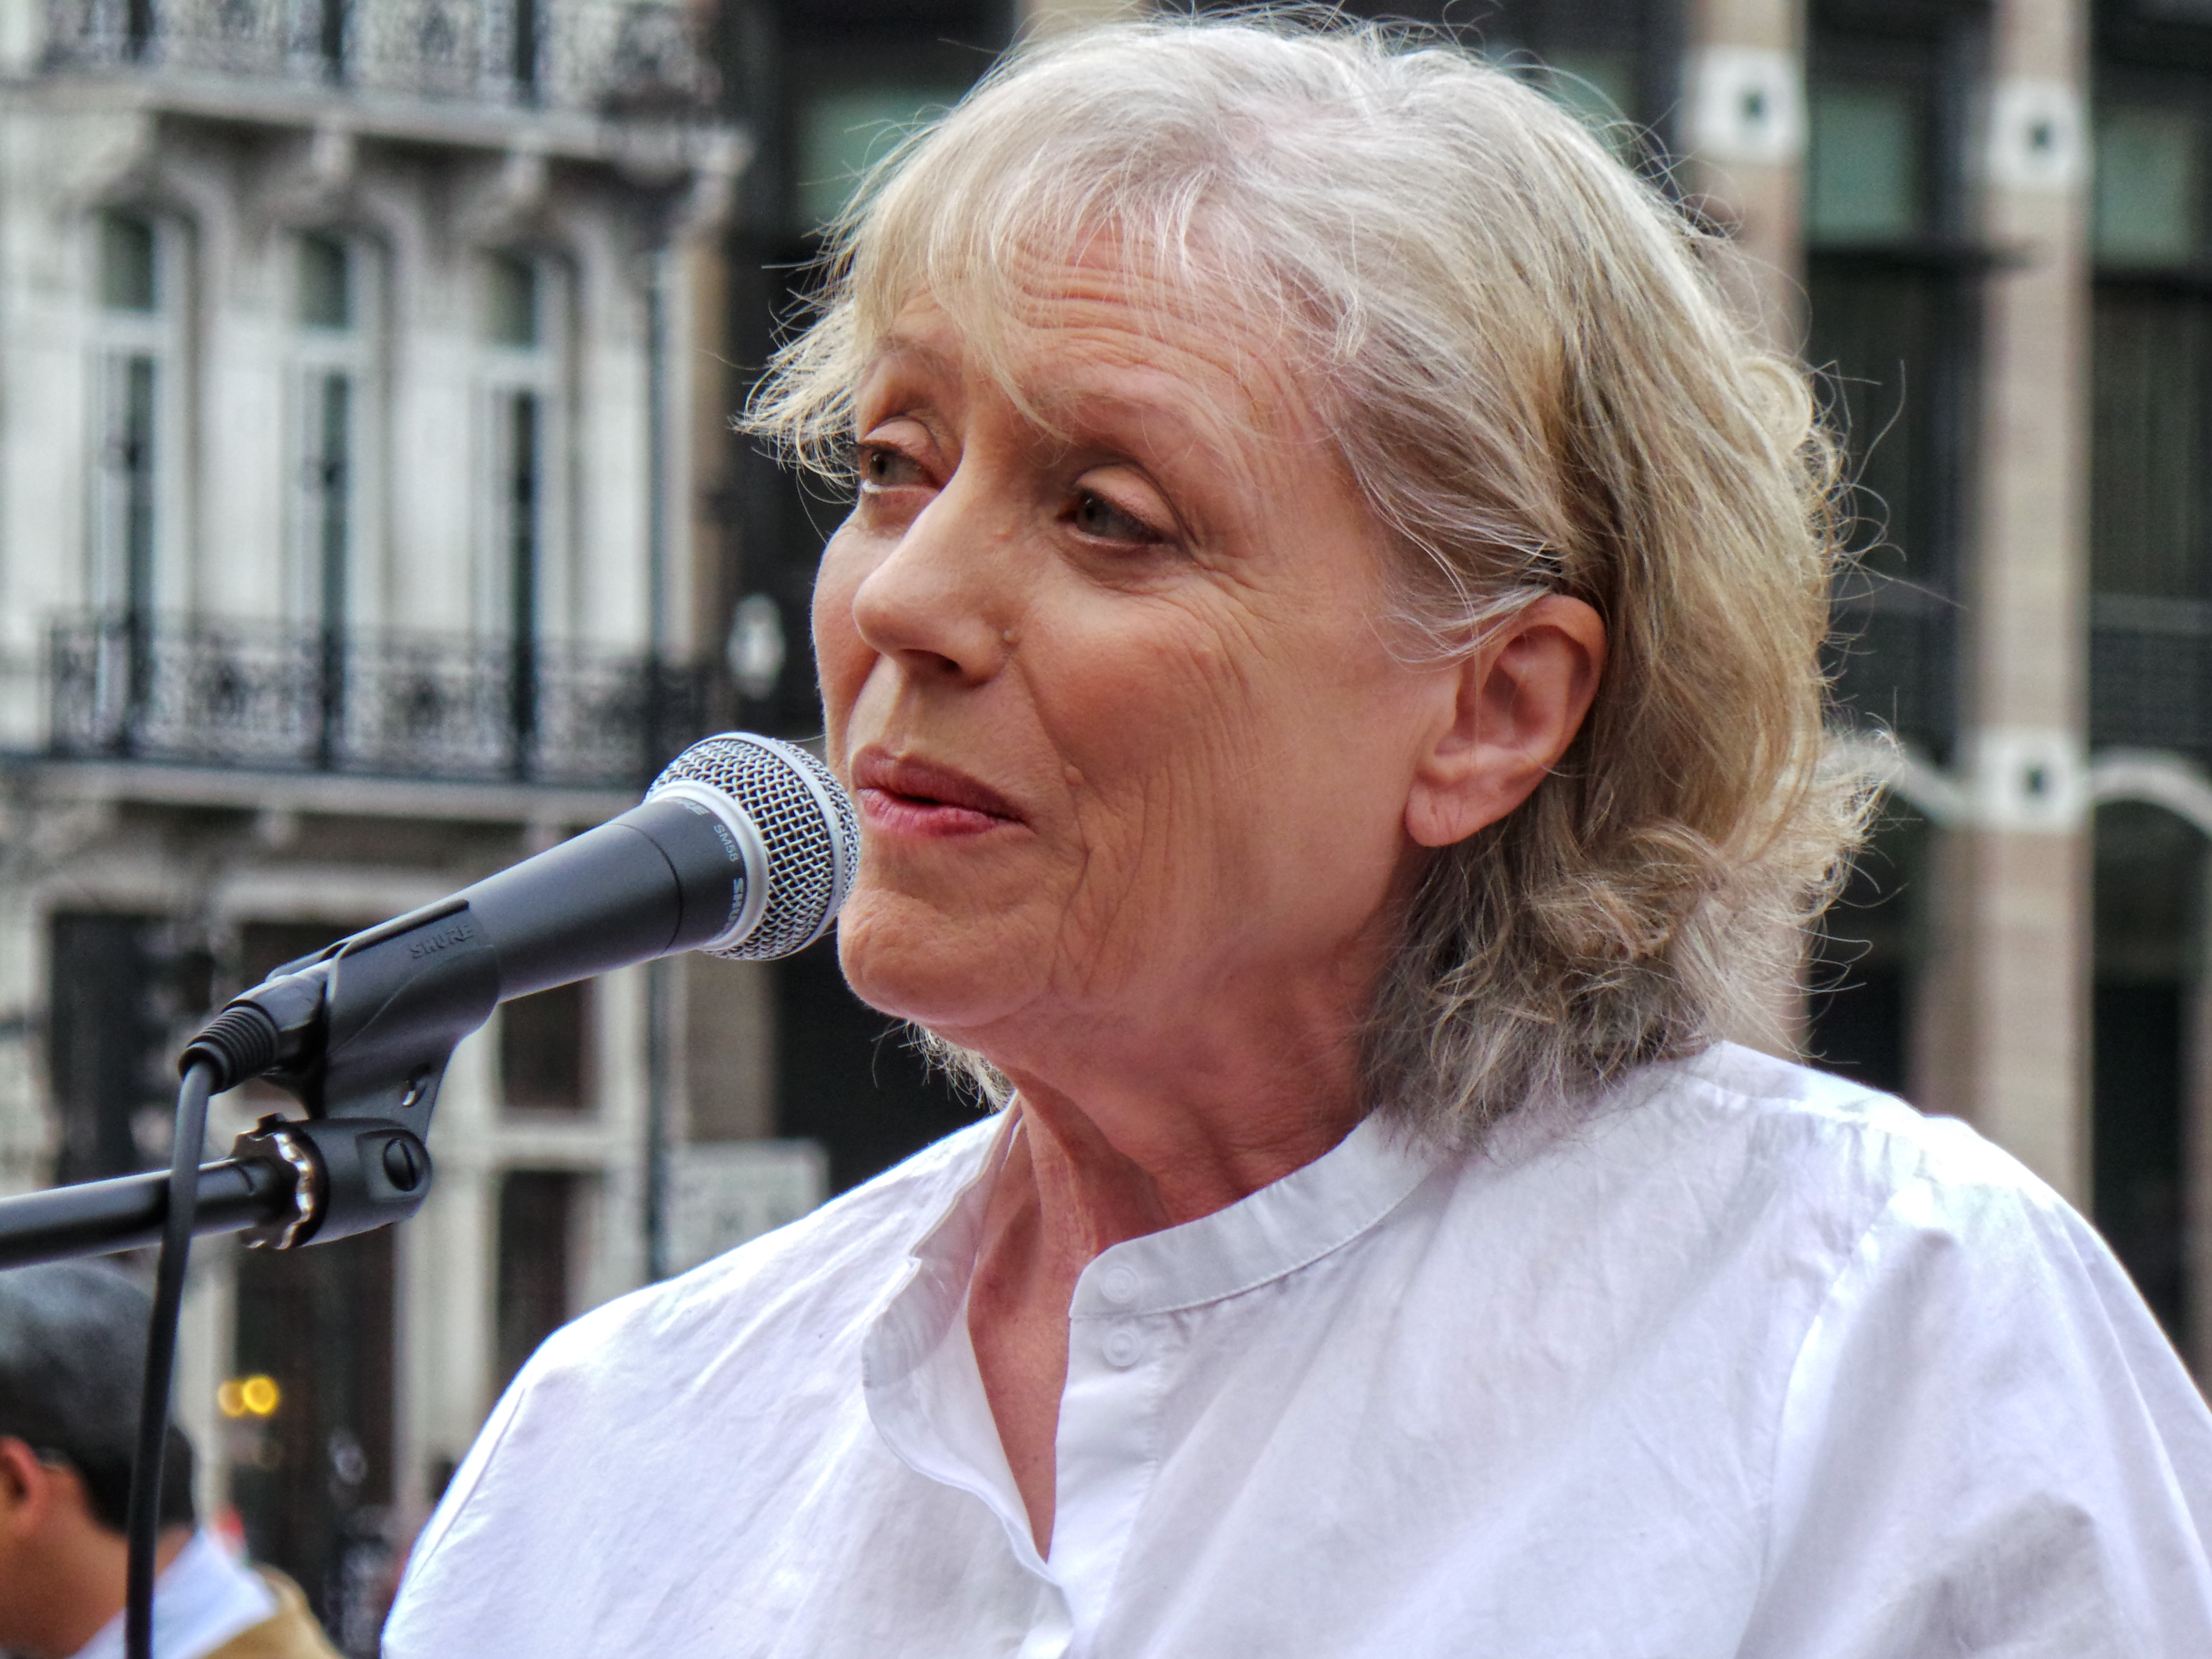 Kika Markham speaking at the No More War event in 2014